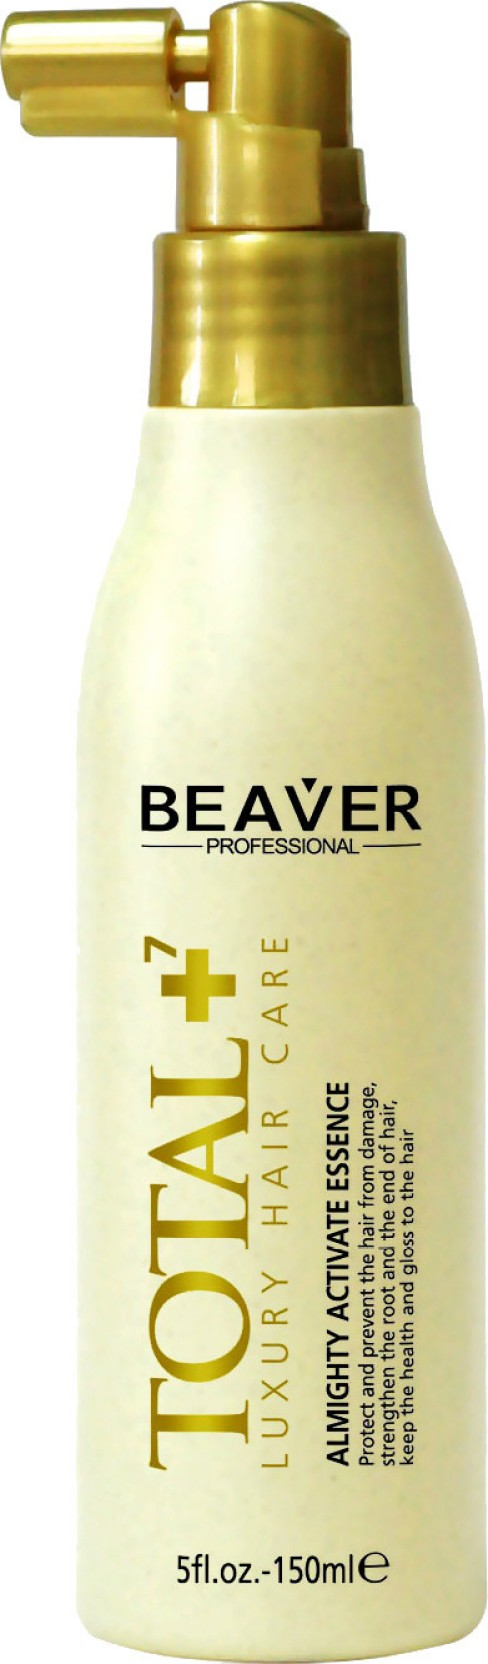 Beaver Almighty Activate Essence Price In India Buy 5 1 Professional Camera Cleaning Kit Share